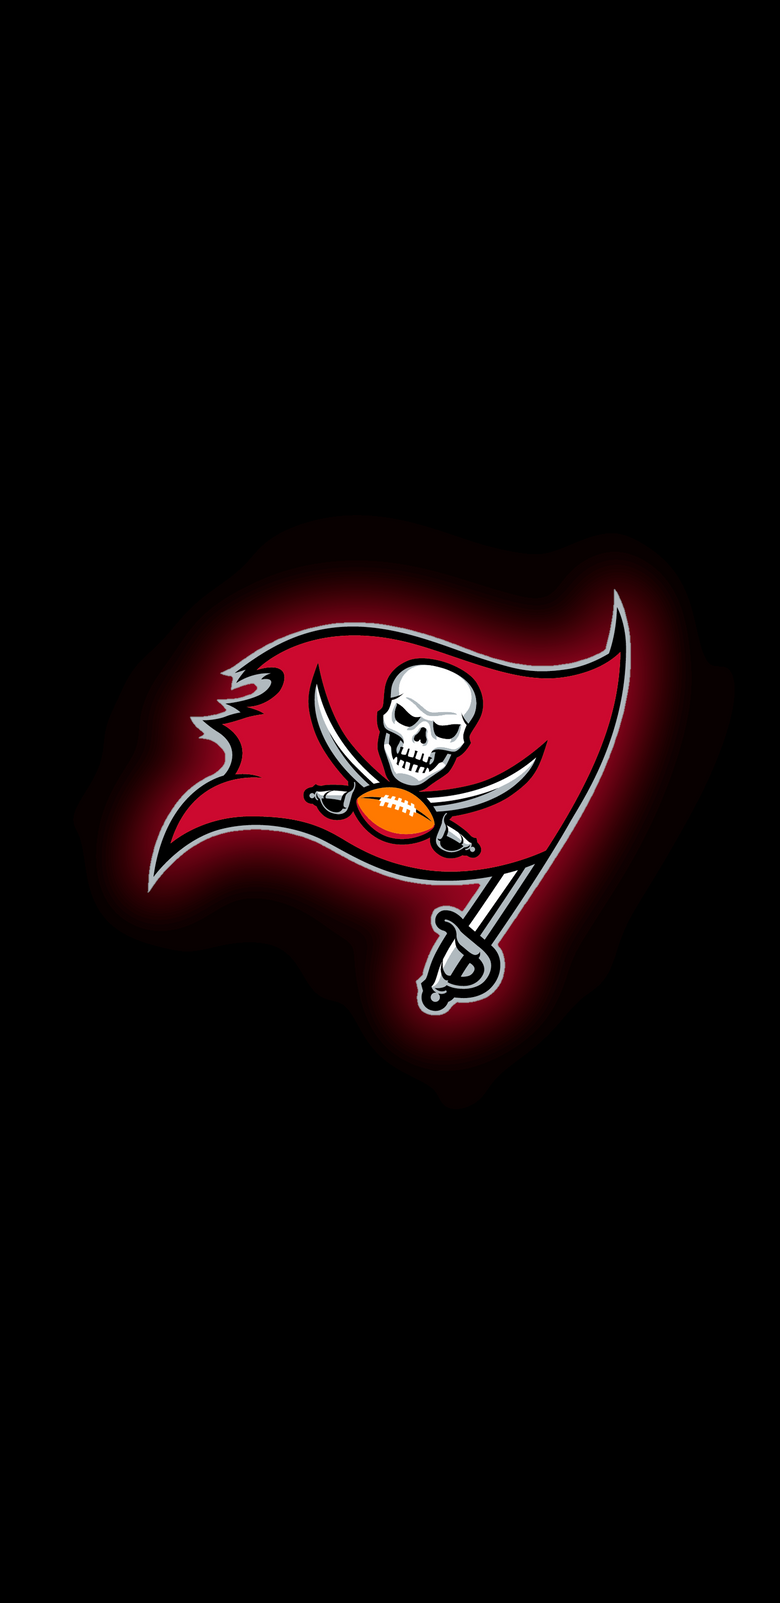 I m making an amoled wallpapers for every NFL team 8 down buccaneers